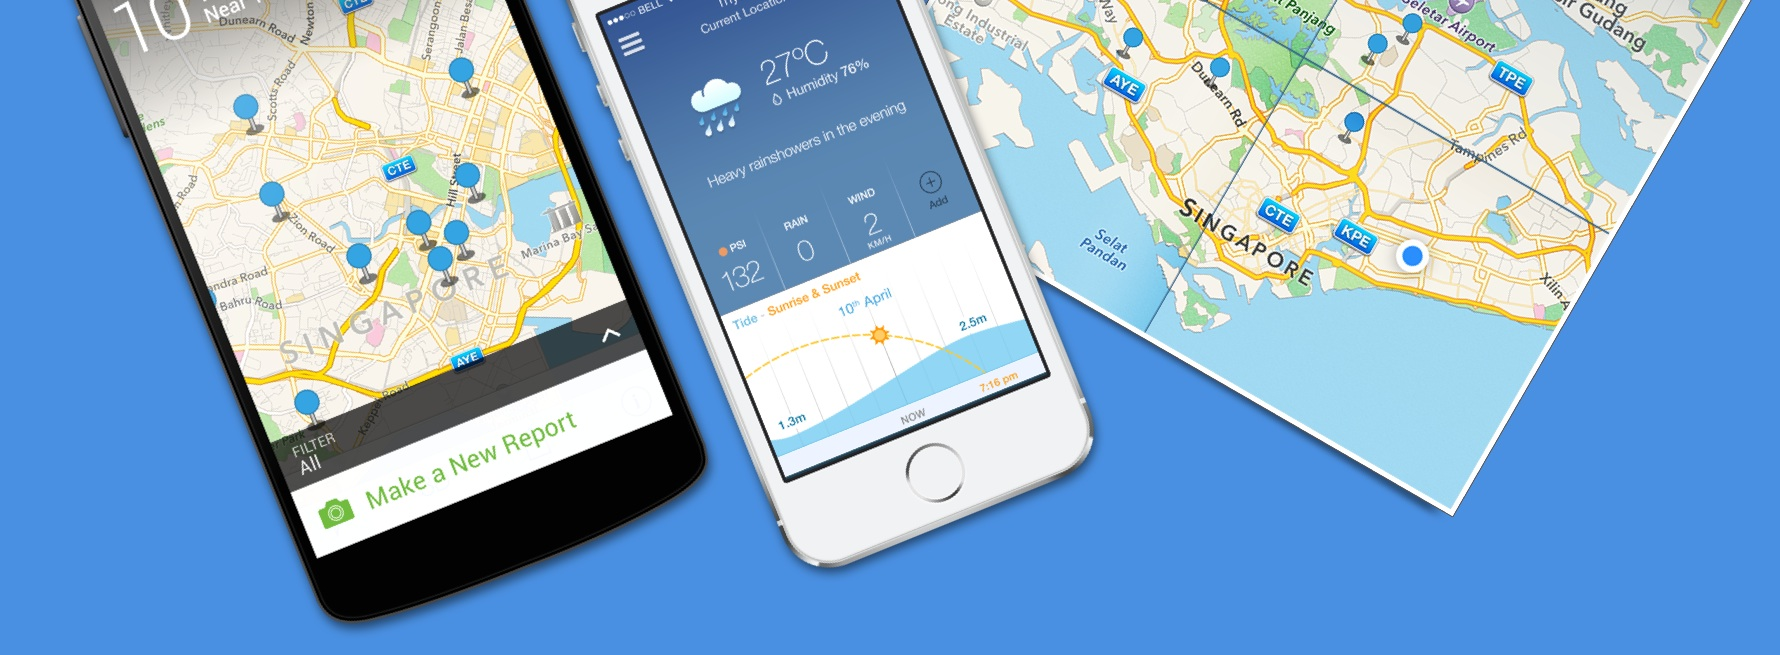 The weather app that Nav worked on